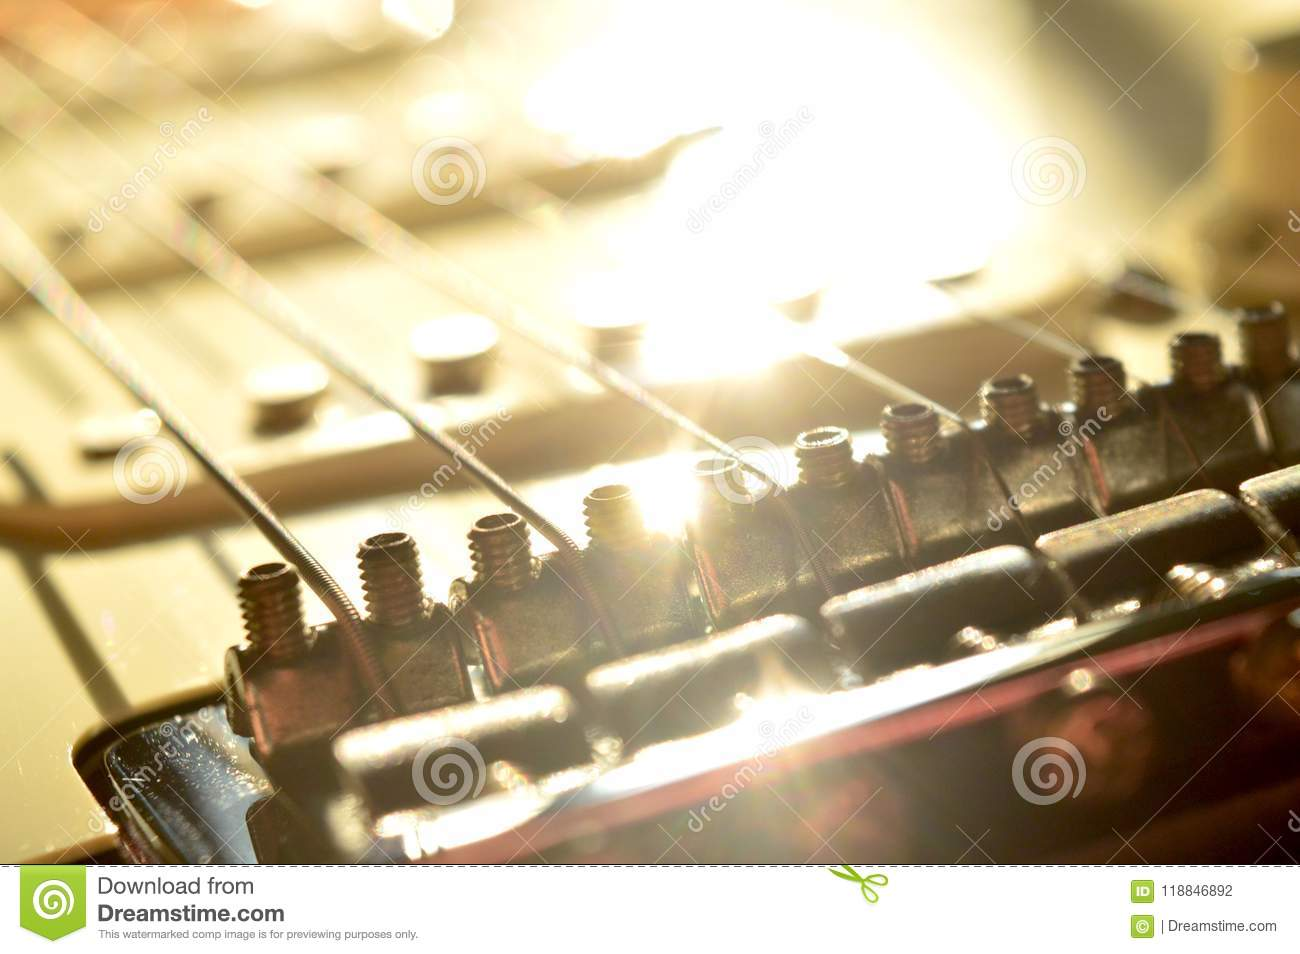 Sunlight Reflected Off The Body Of A Guitar, The Bridge Is